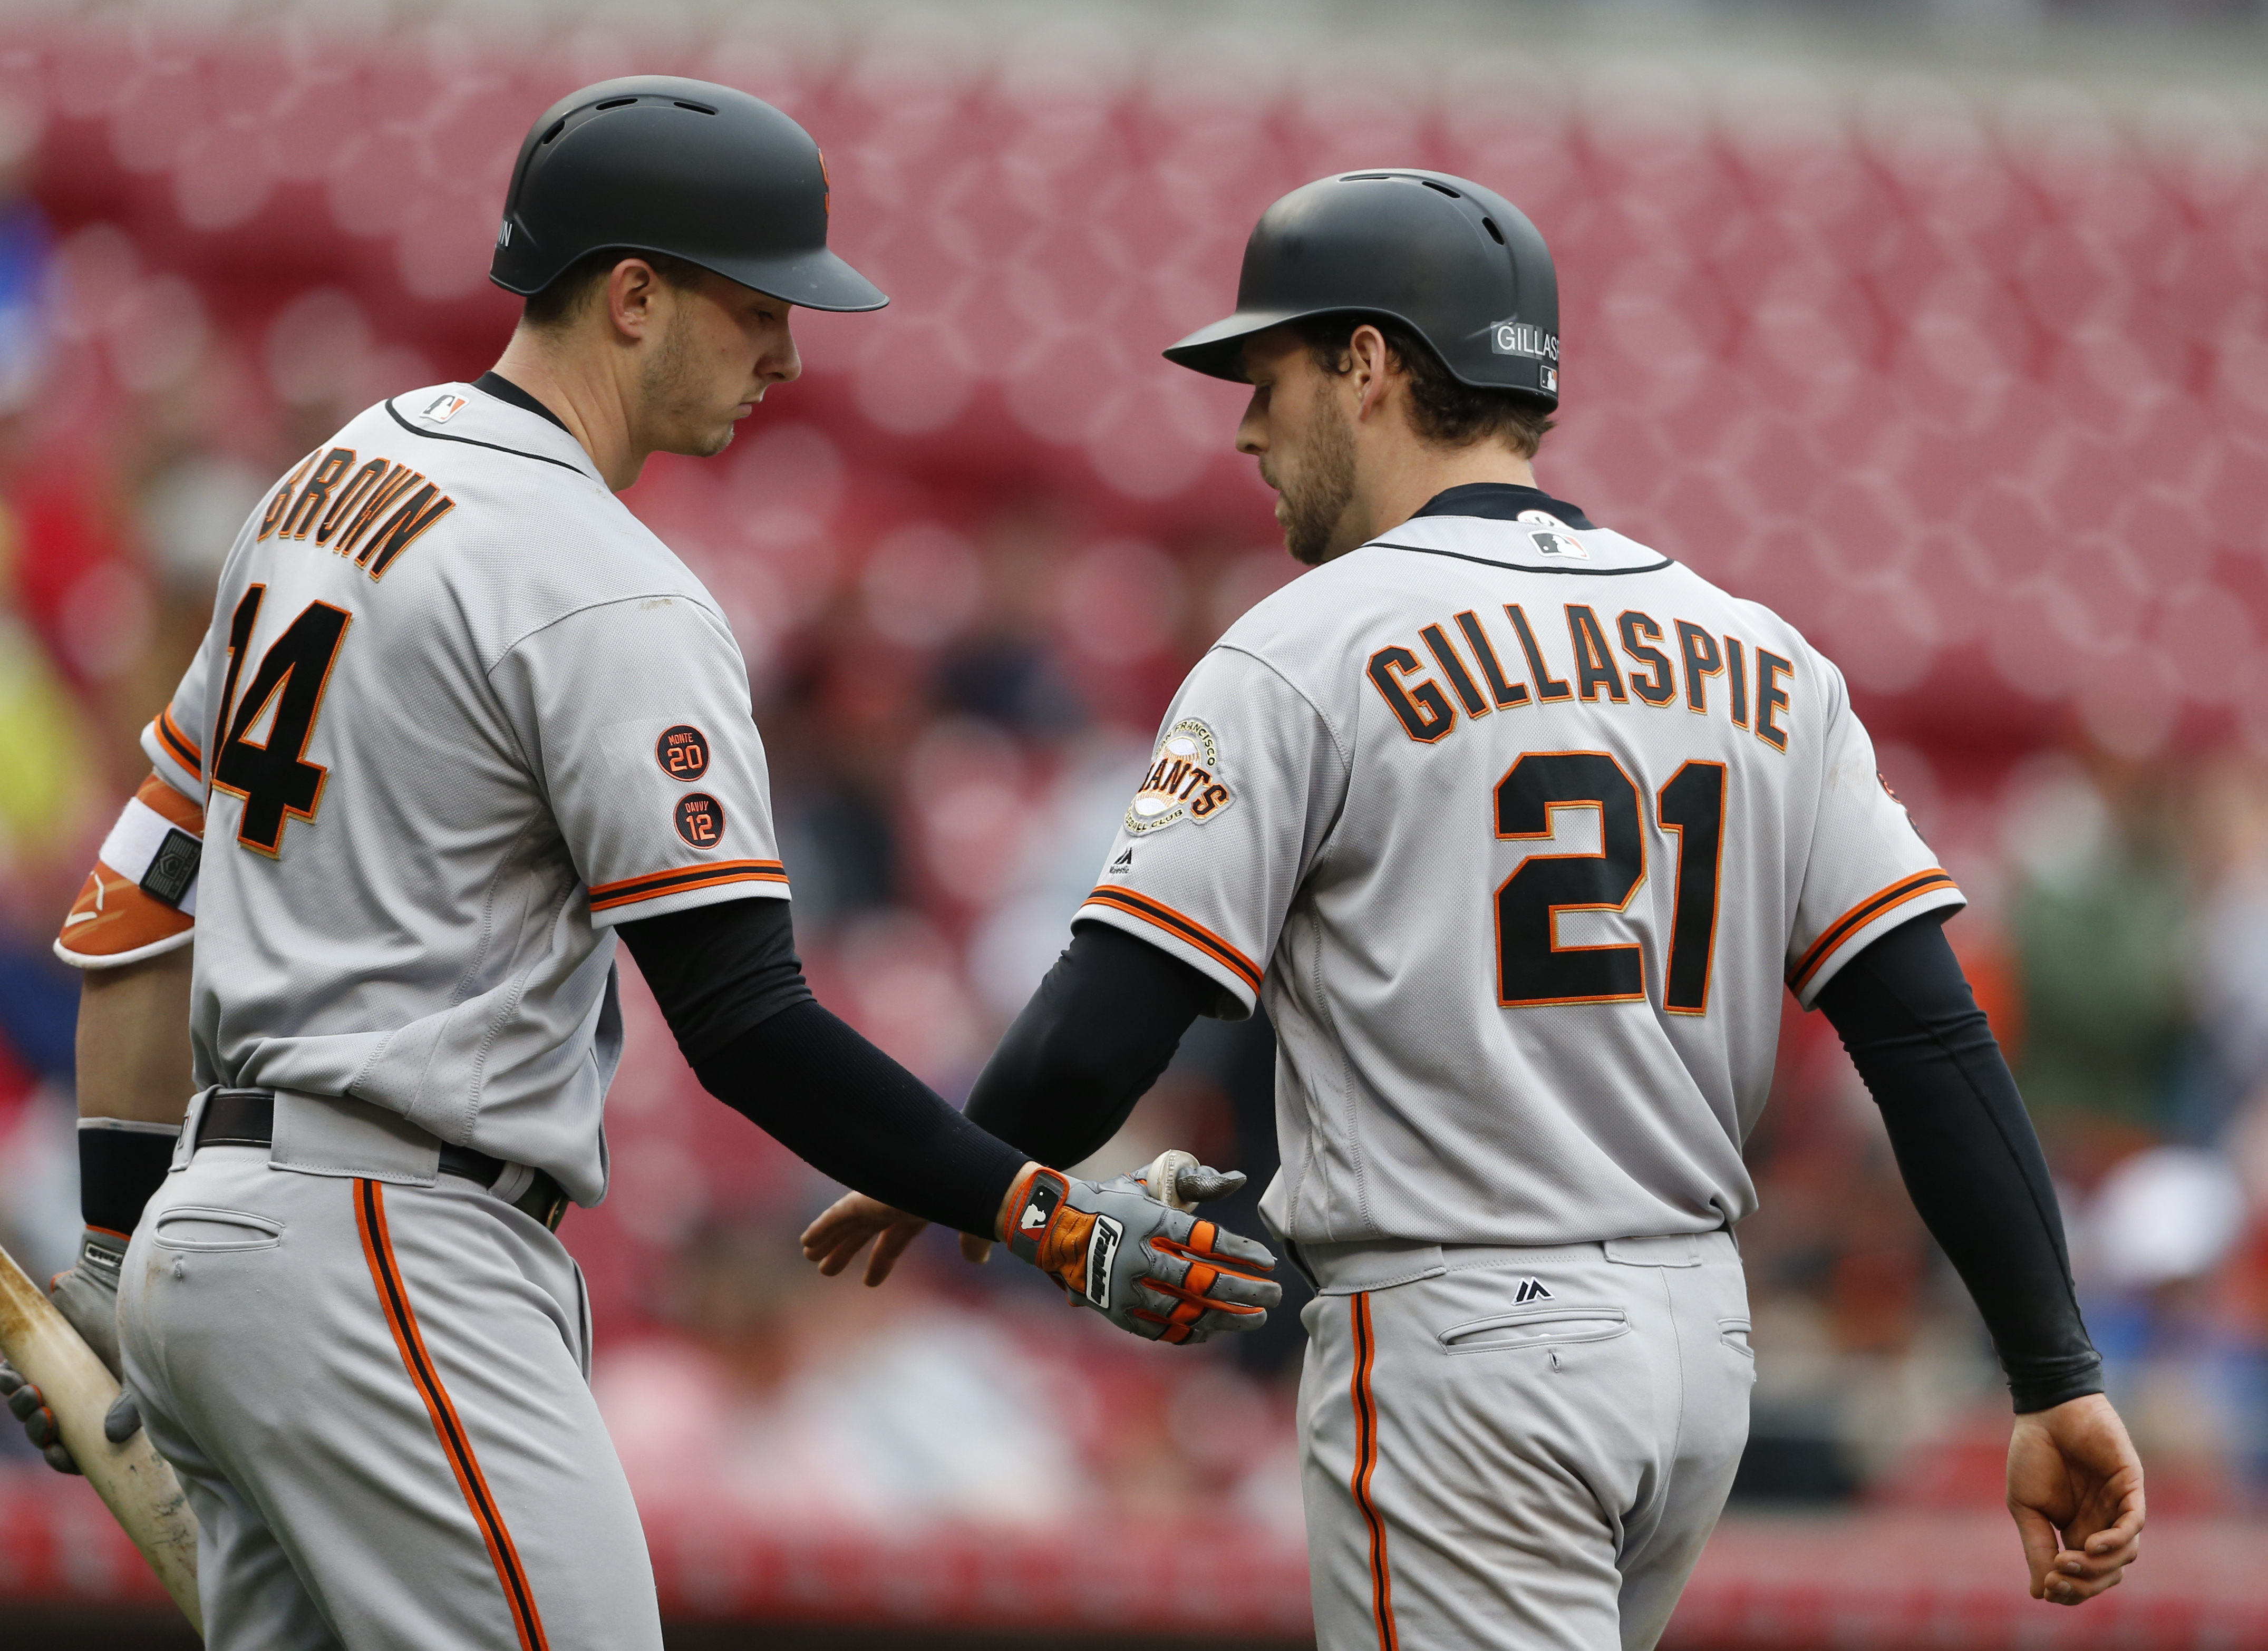 San Francisco Giants' Conor Gillaspie (21) is congratulated by Trevor Brown (14) after hitting a solo home run off Cincinnati Reds pitcher Dan Straily during the fourth inning of a baseball game, Wednesday, May 4, 2016, in Cincinnati. (AP Photo/Gary Lande